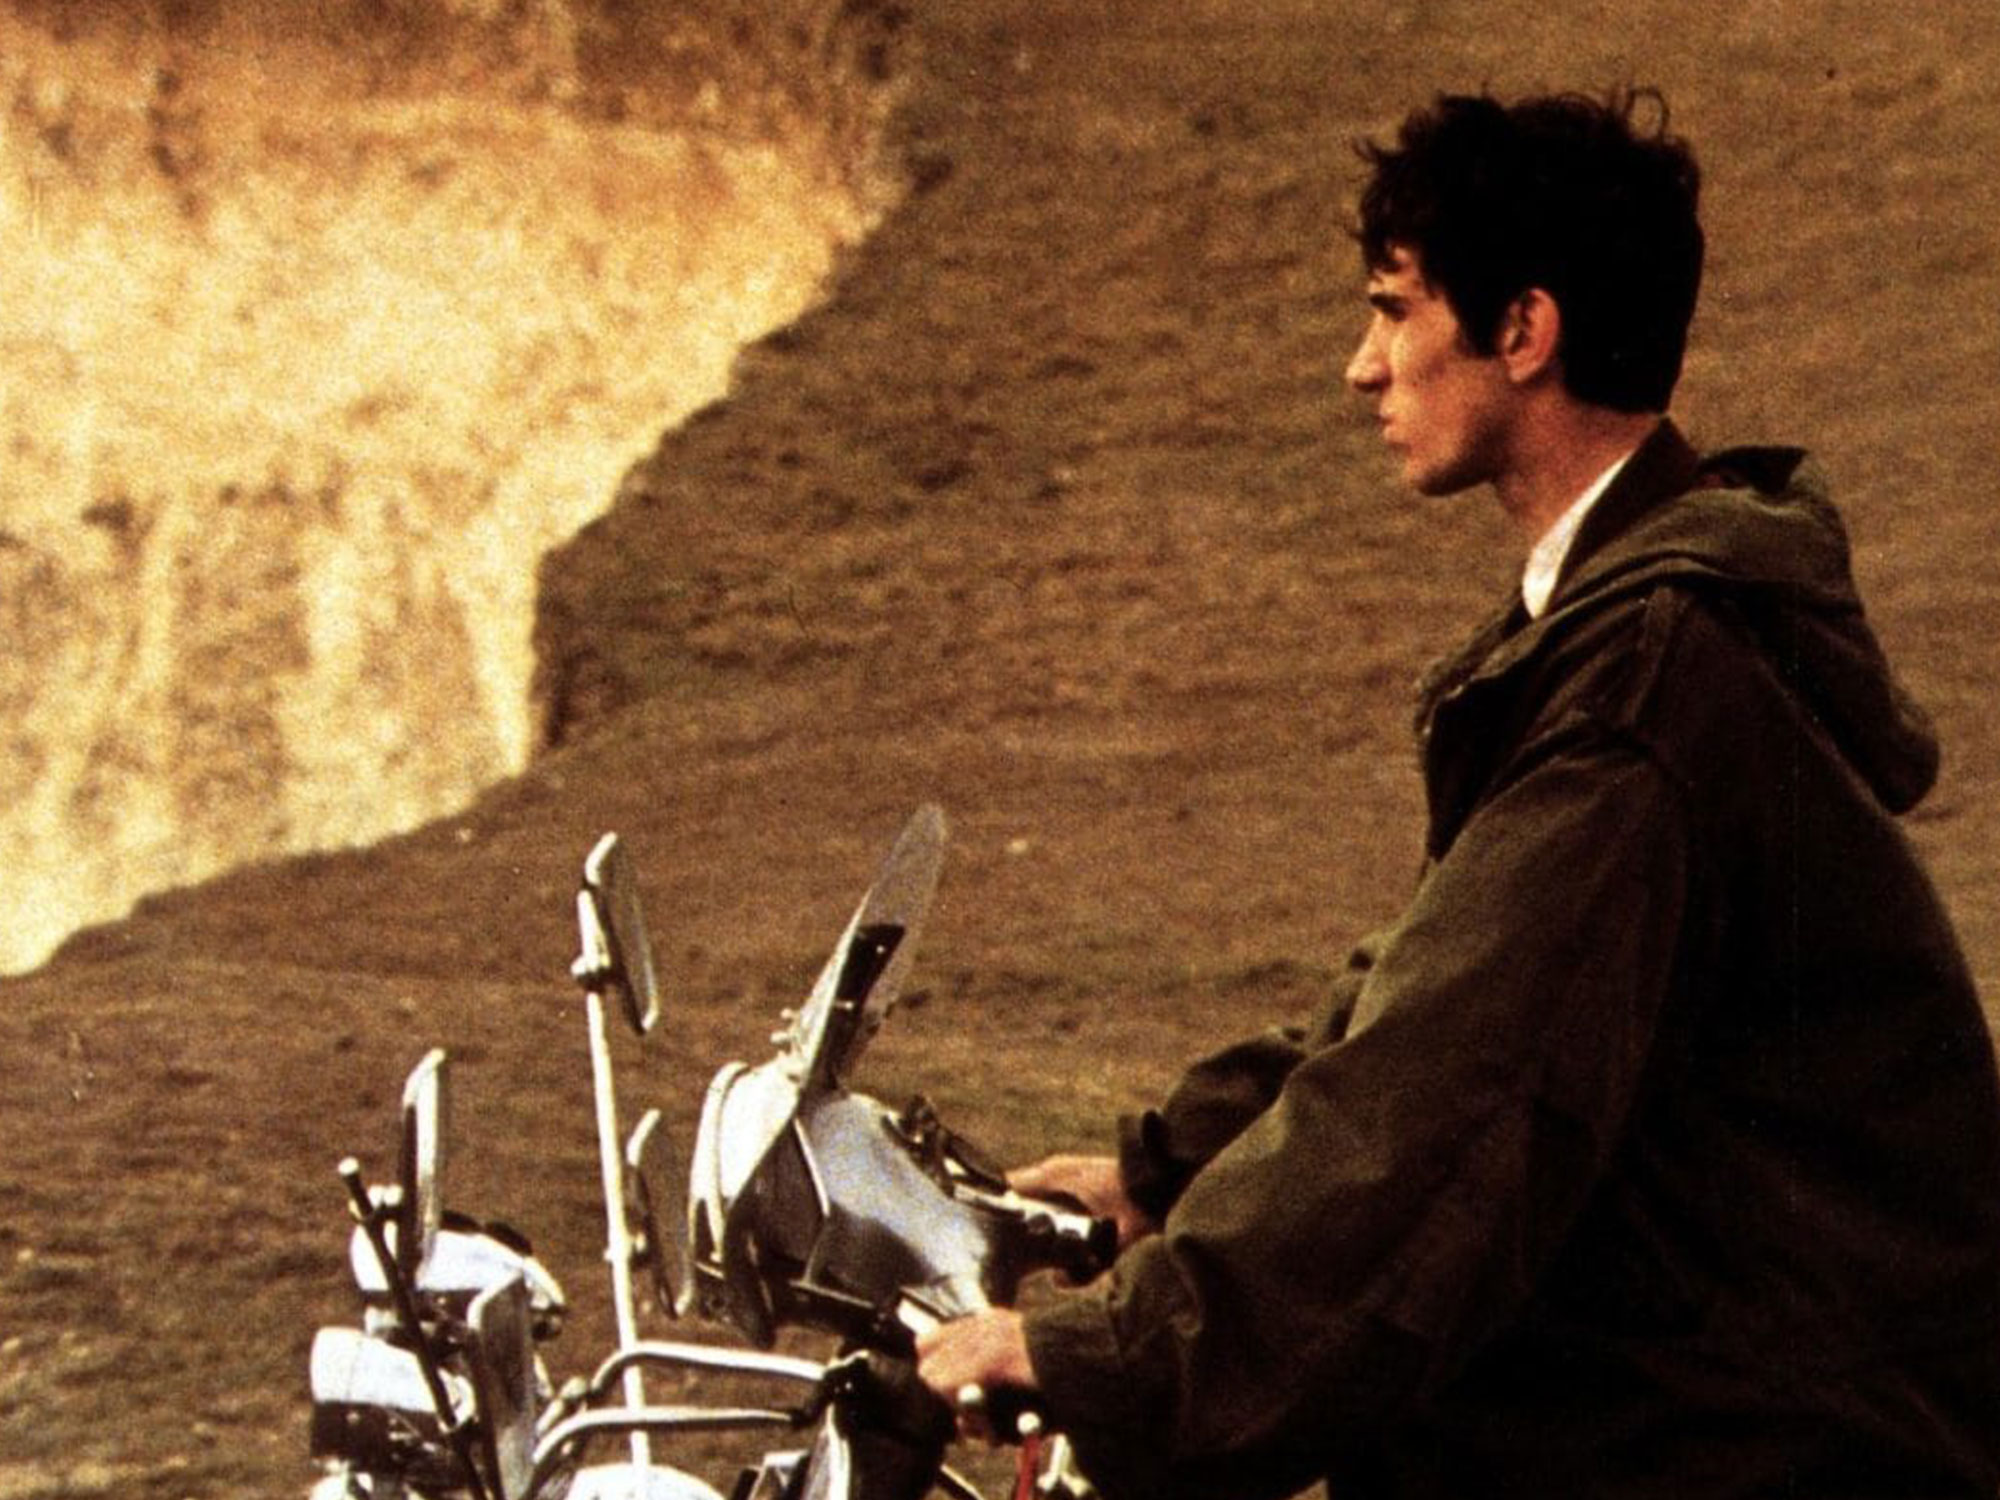 Mods and sods – Remembering Quadrophenia at 40